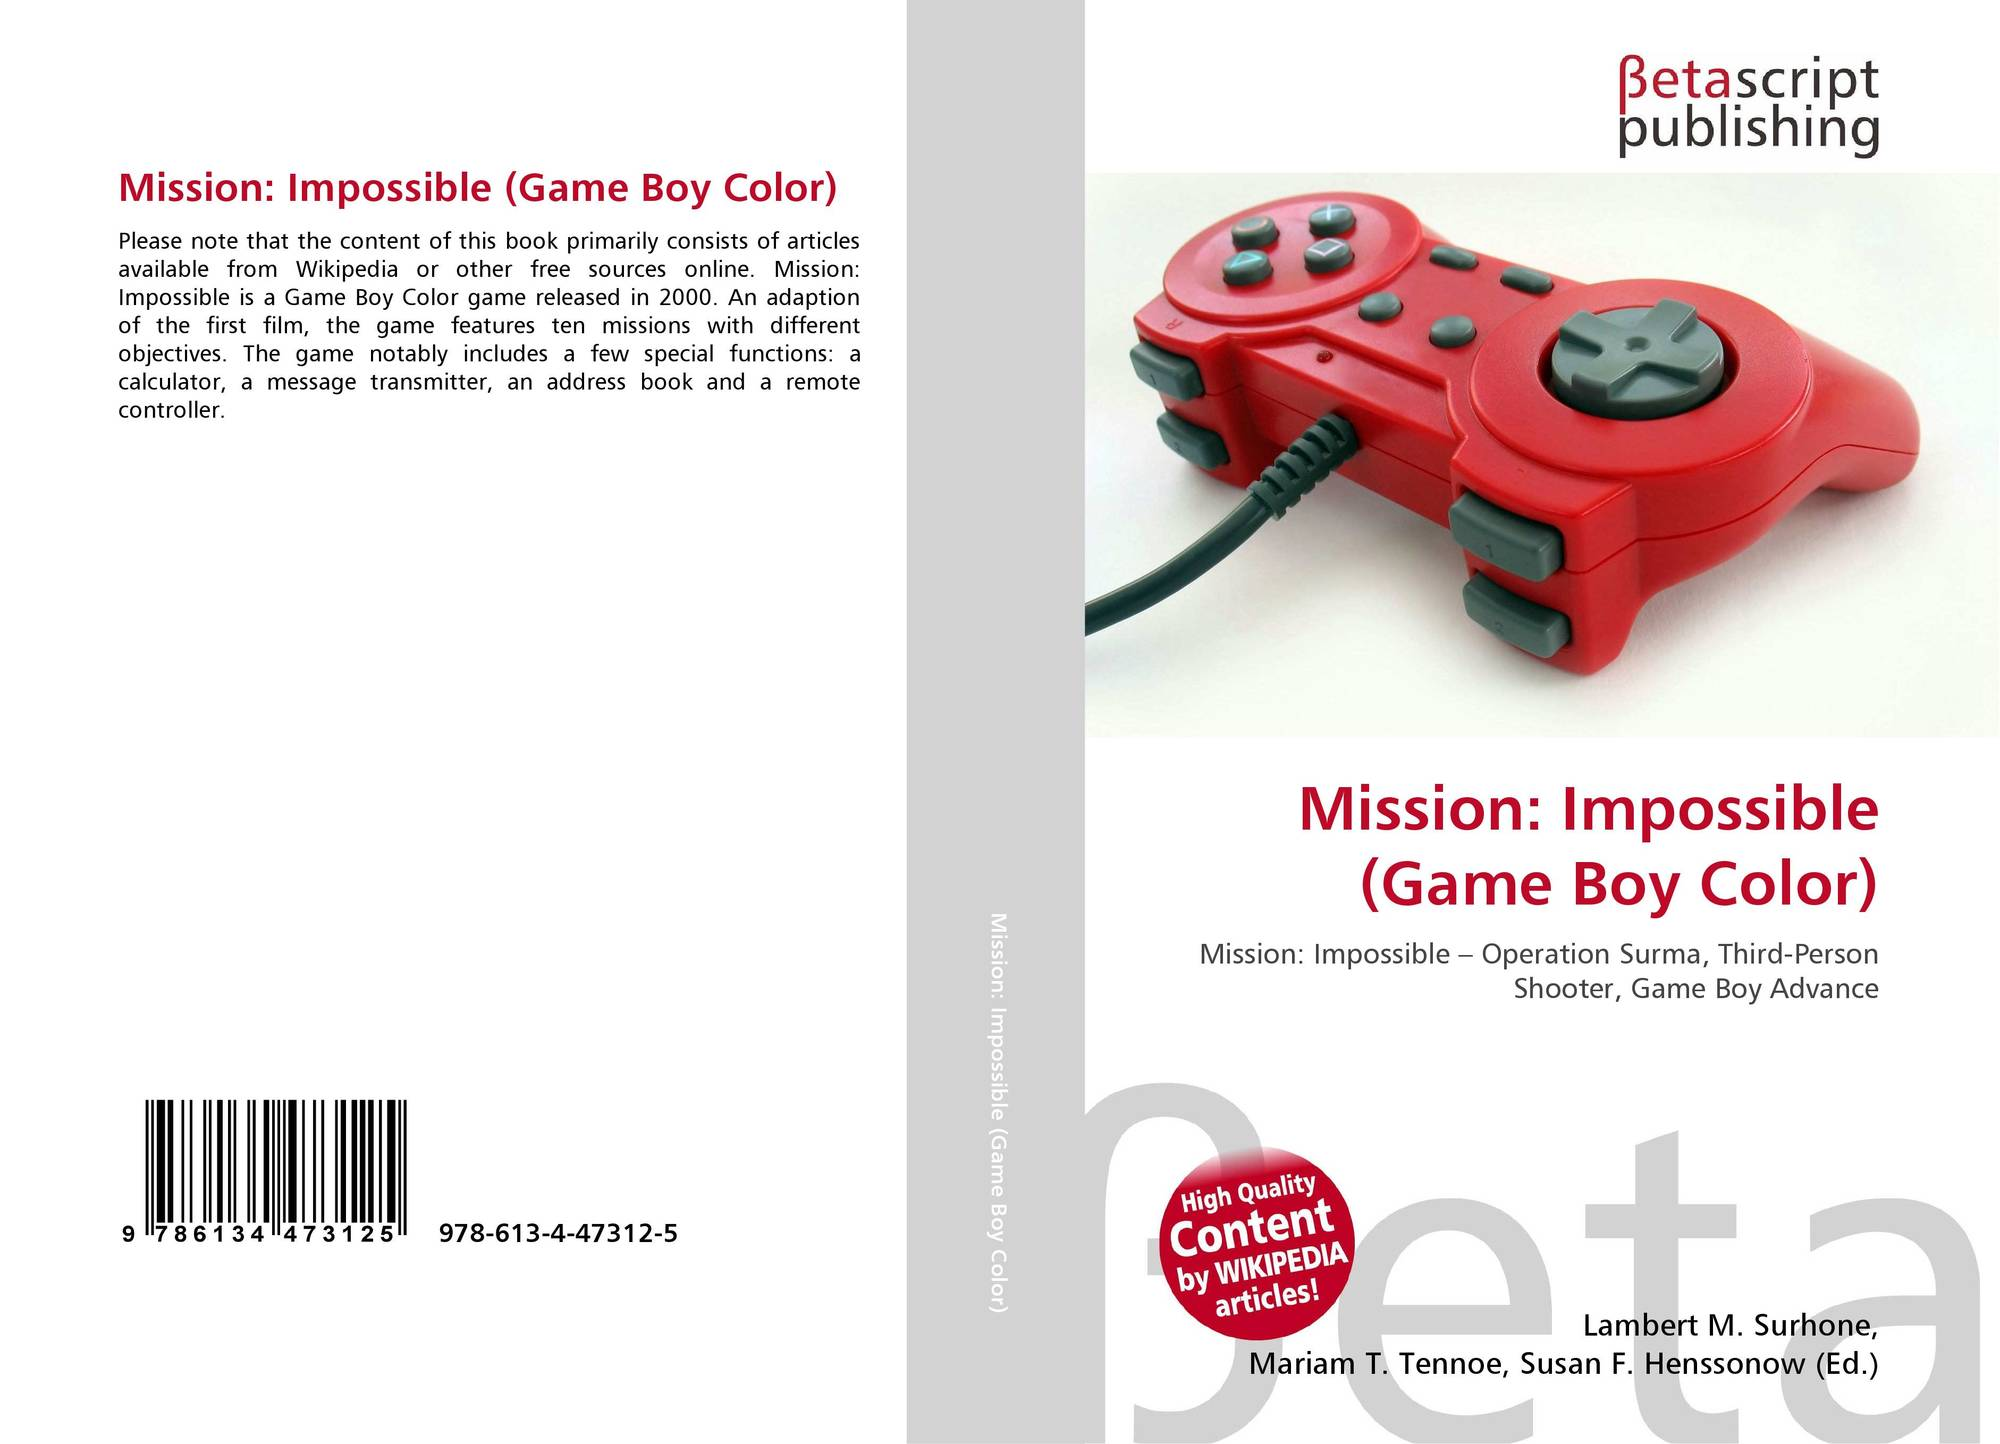 Game boy color online free - Bookcover Of Mission Impossible Game Boy Color Omni Badge 9307e2201e5f762643a64561af3456be64a87707602f96b92ef18a9bbcada116